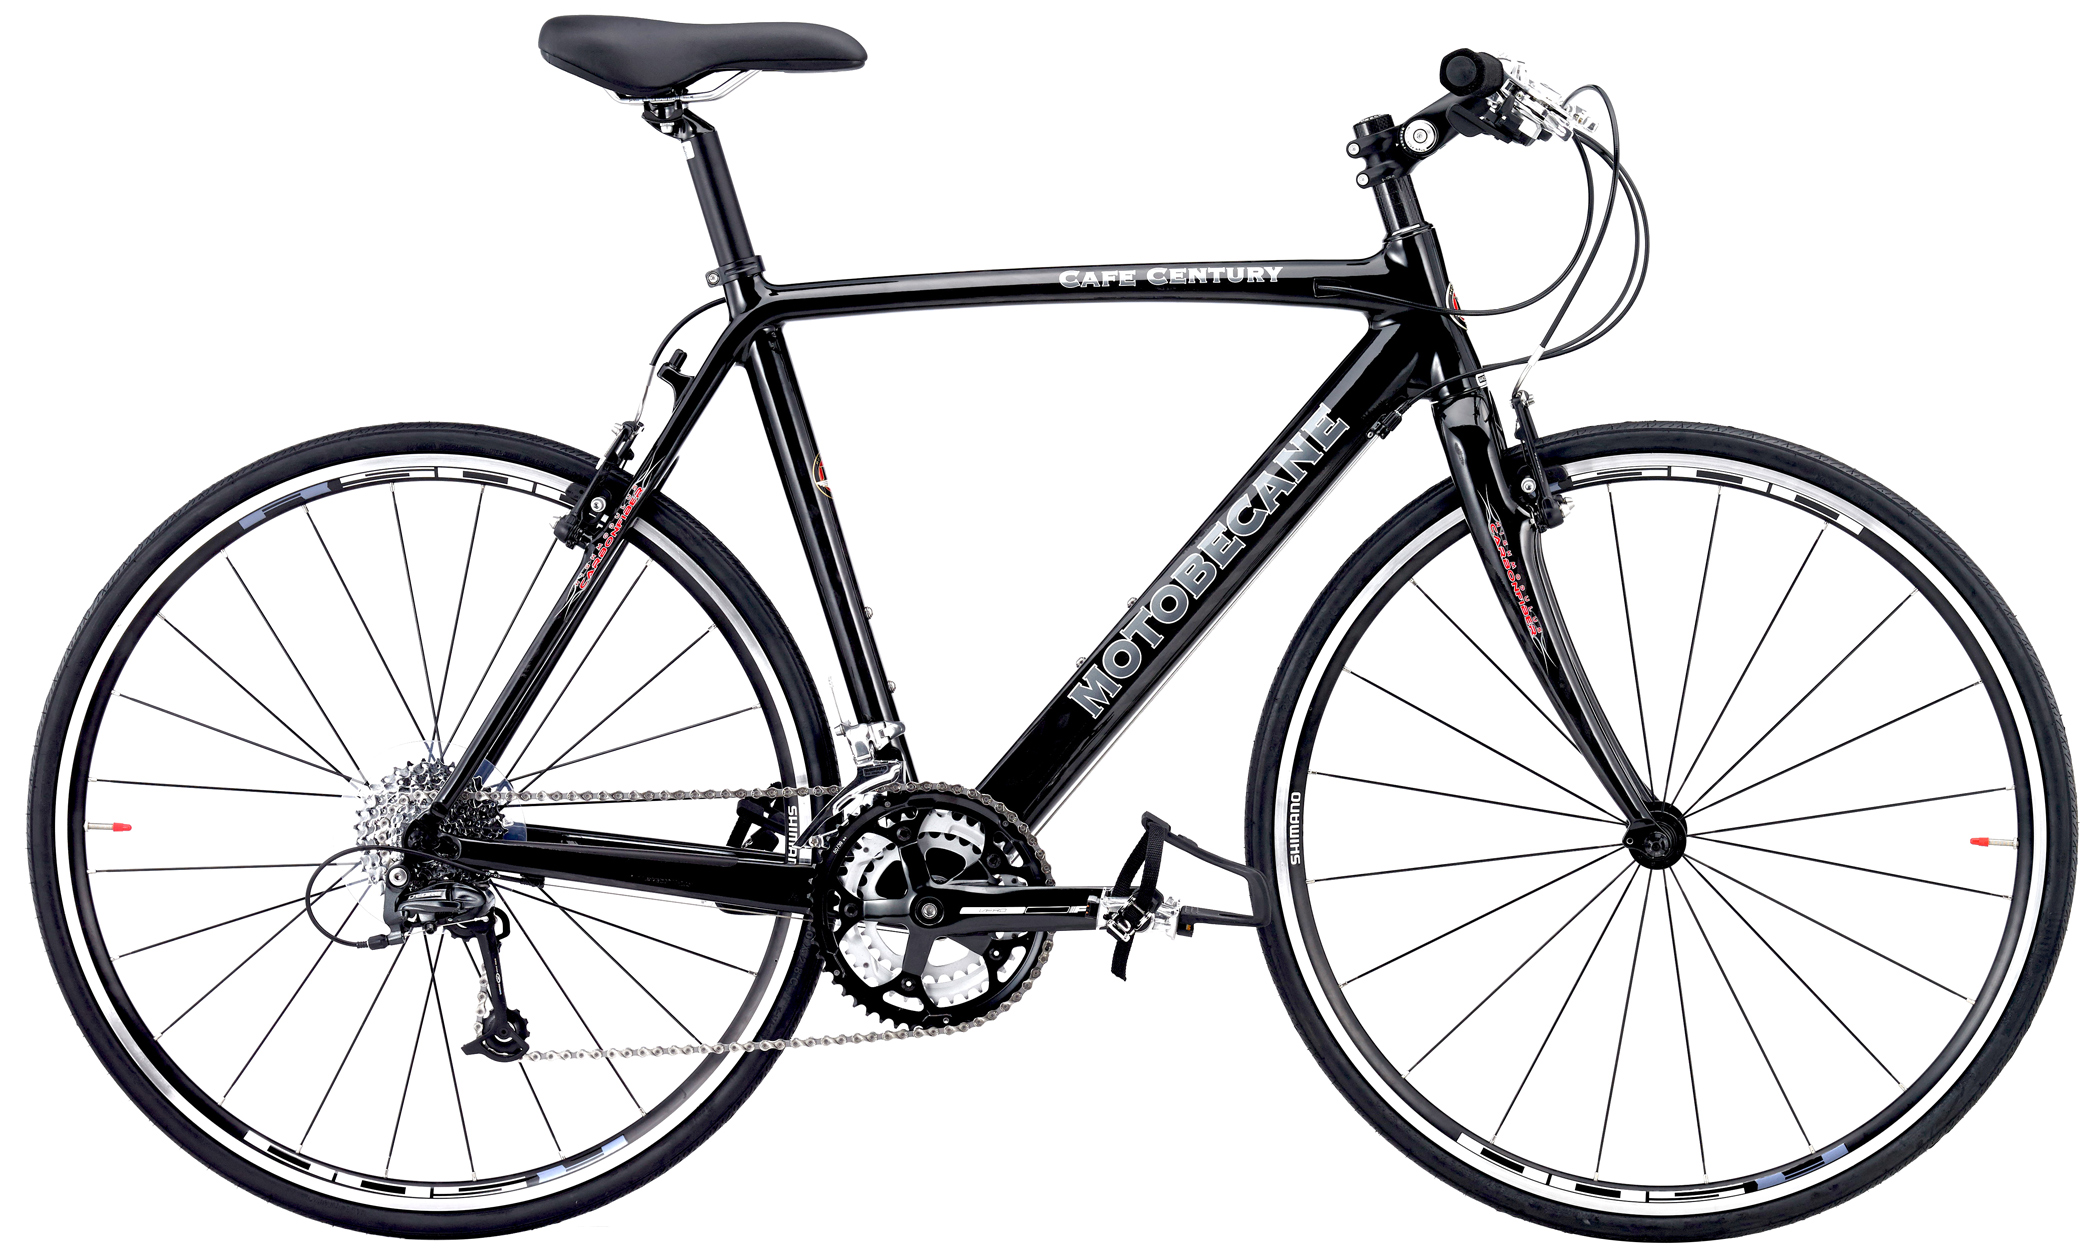 Hybrid Bicycles Save Up To 60 Off New Hybrid Bicycles Road Bikes Cafe Century Pro